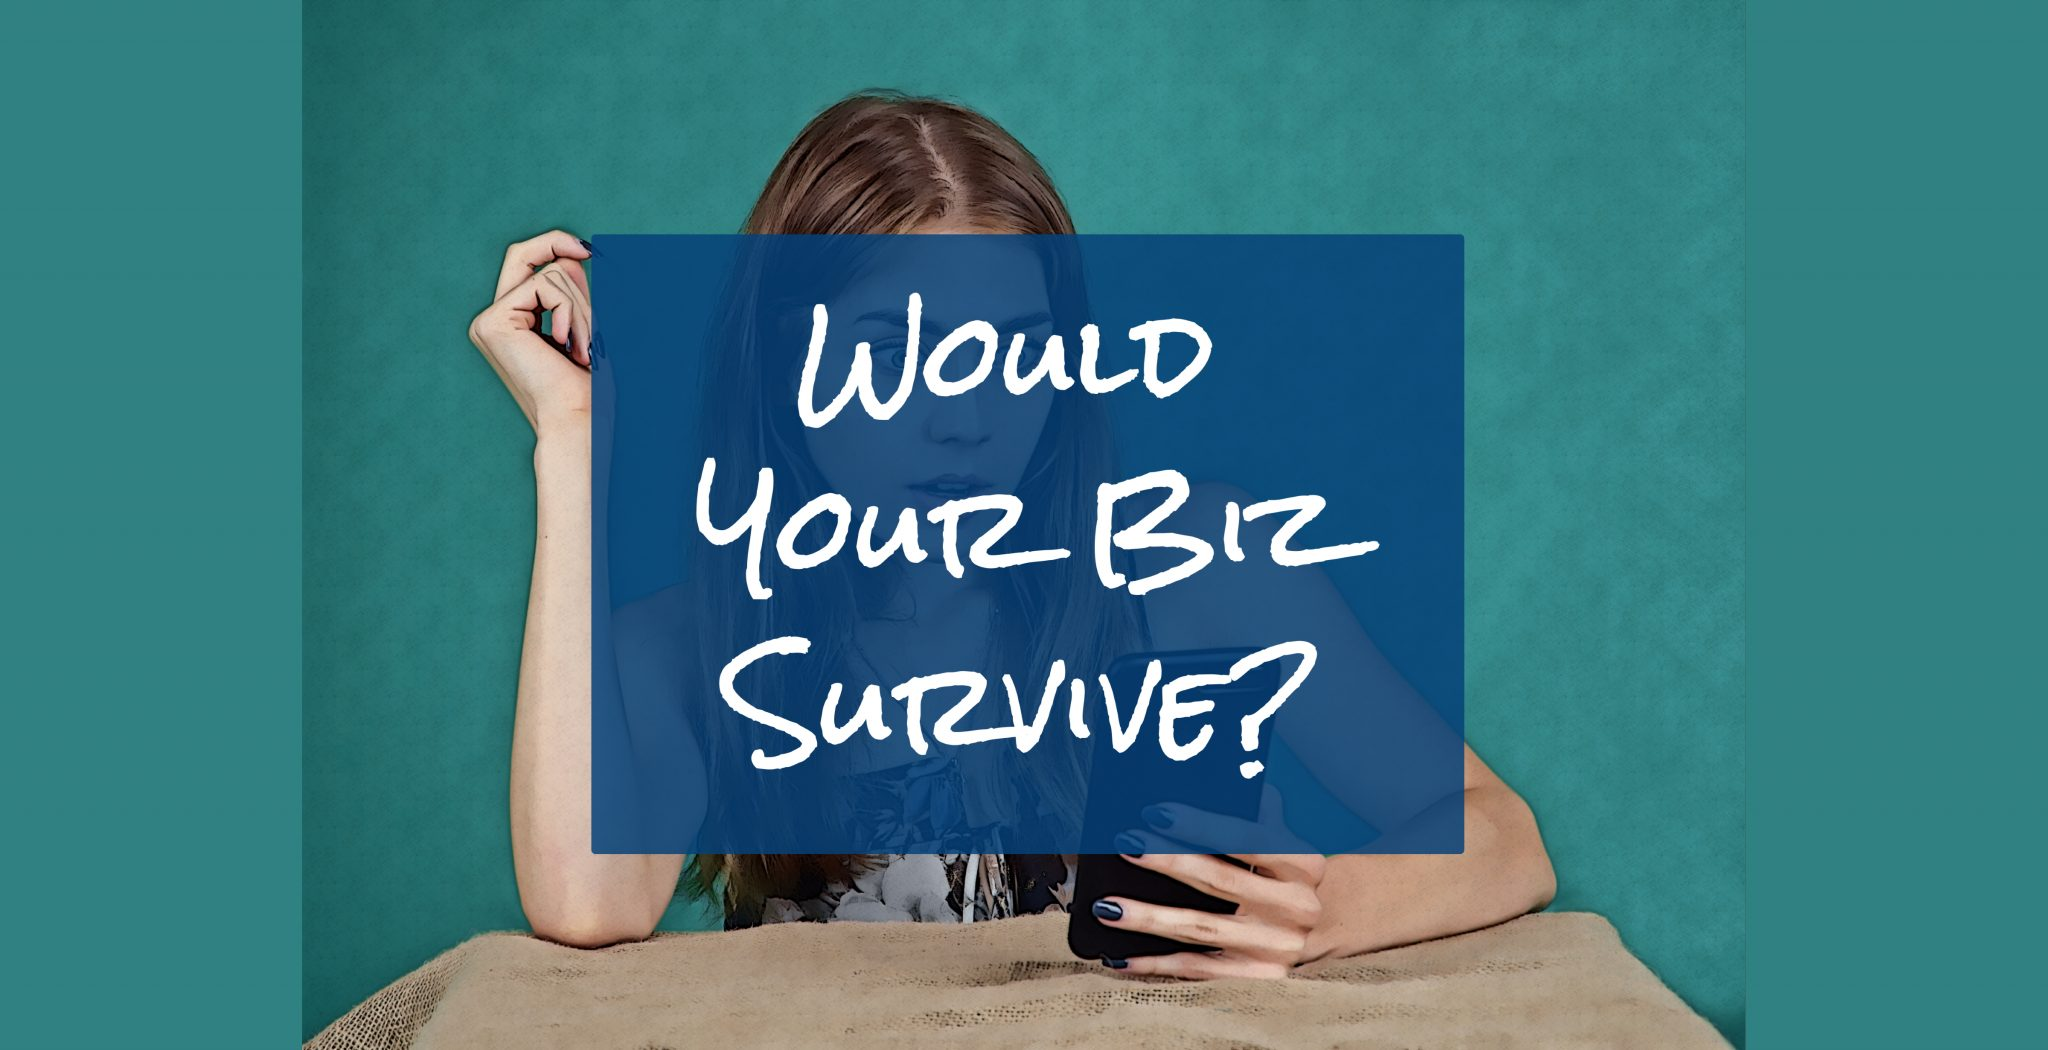 Would your business survive if Social Media disappeared? 11